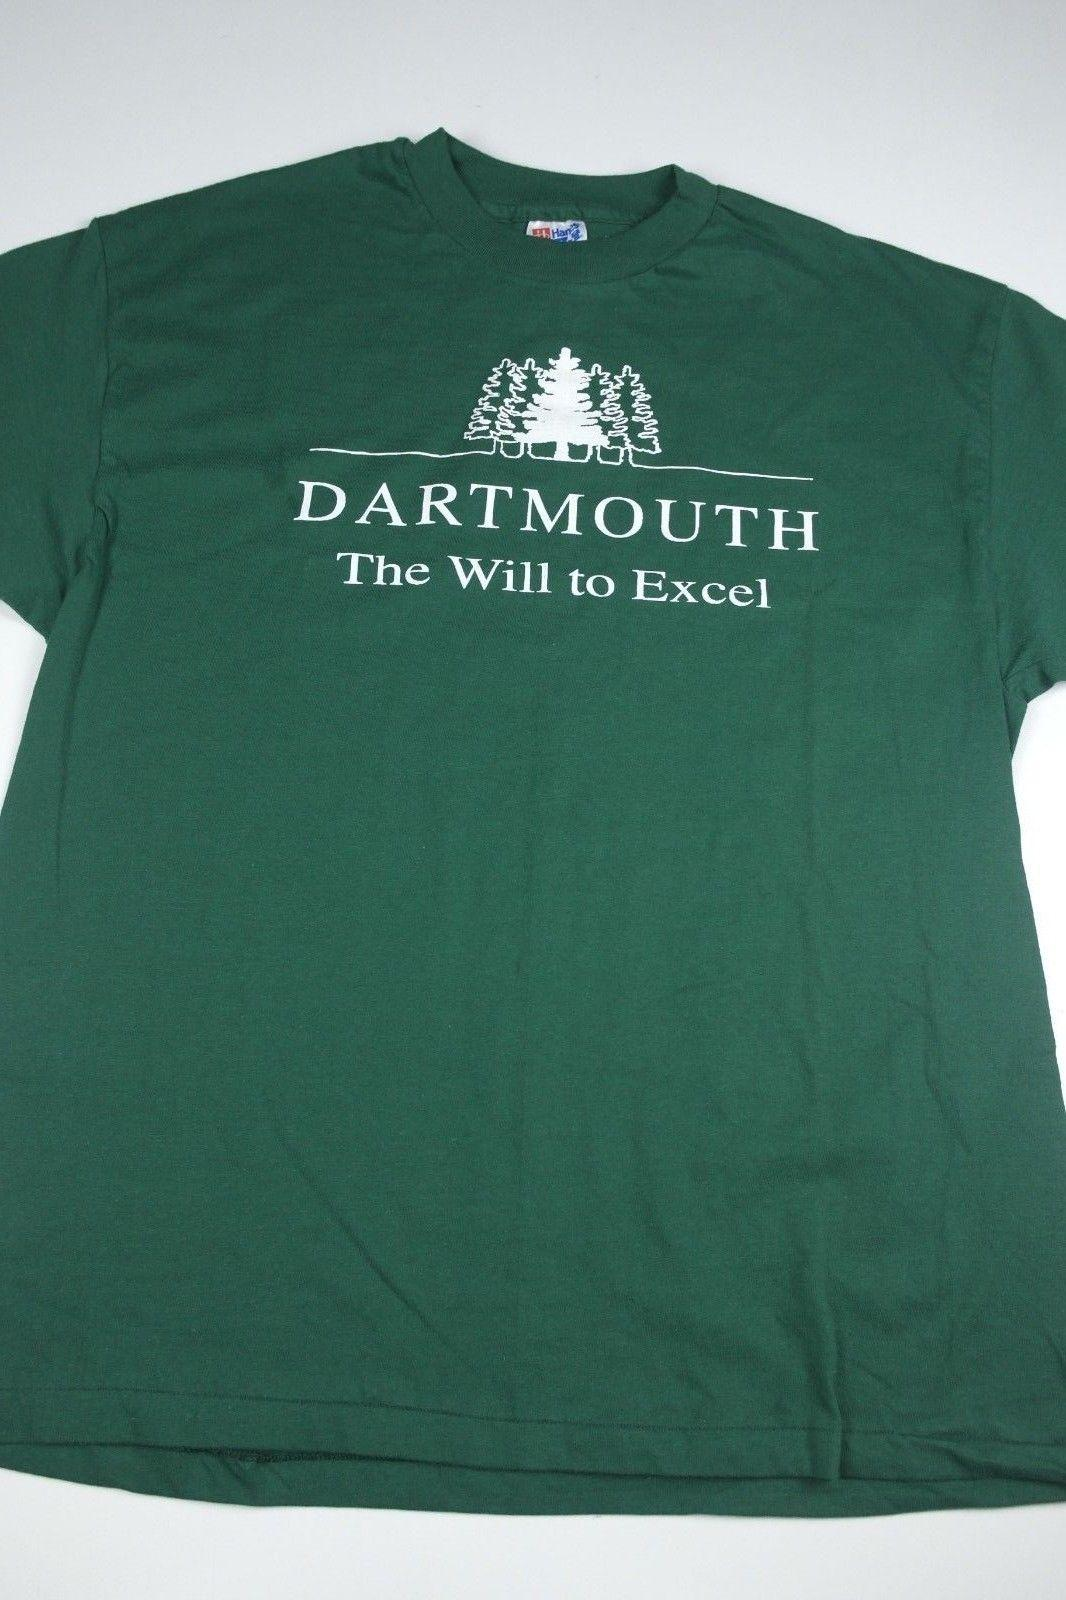 b135a1a27a16b Vintage Dartmouth College The Will To Excel T-Shirt Size XL green vtg  90sFunny free shipping Unisex Casual